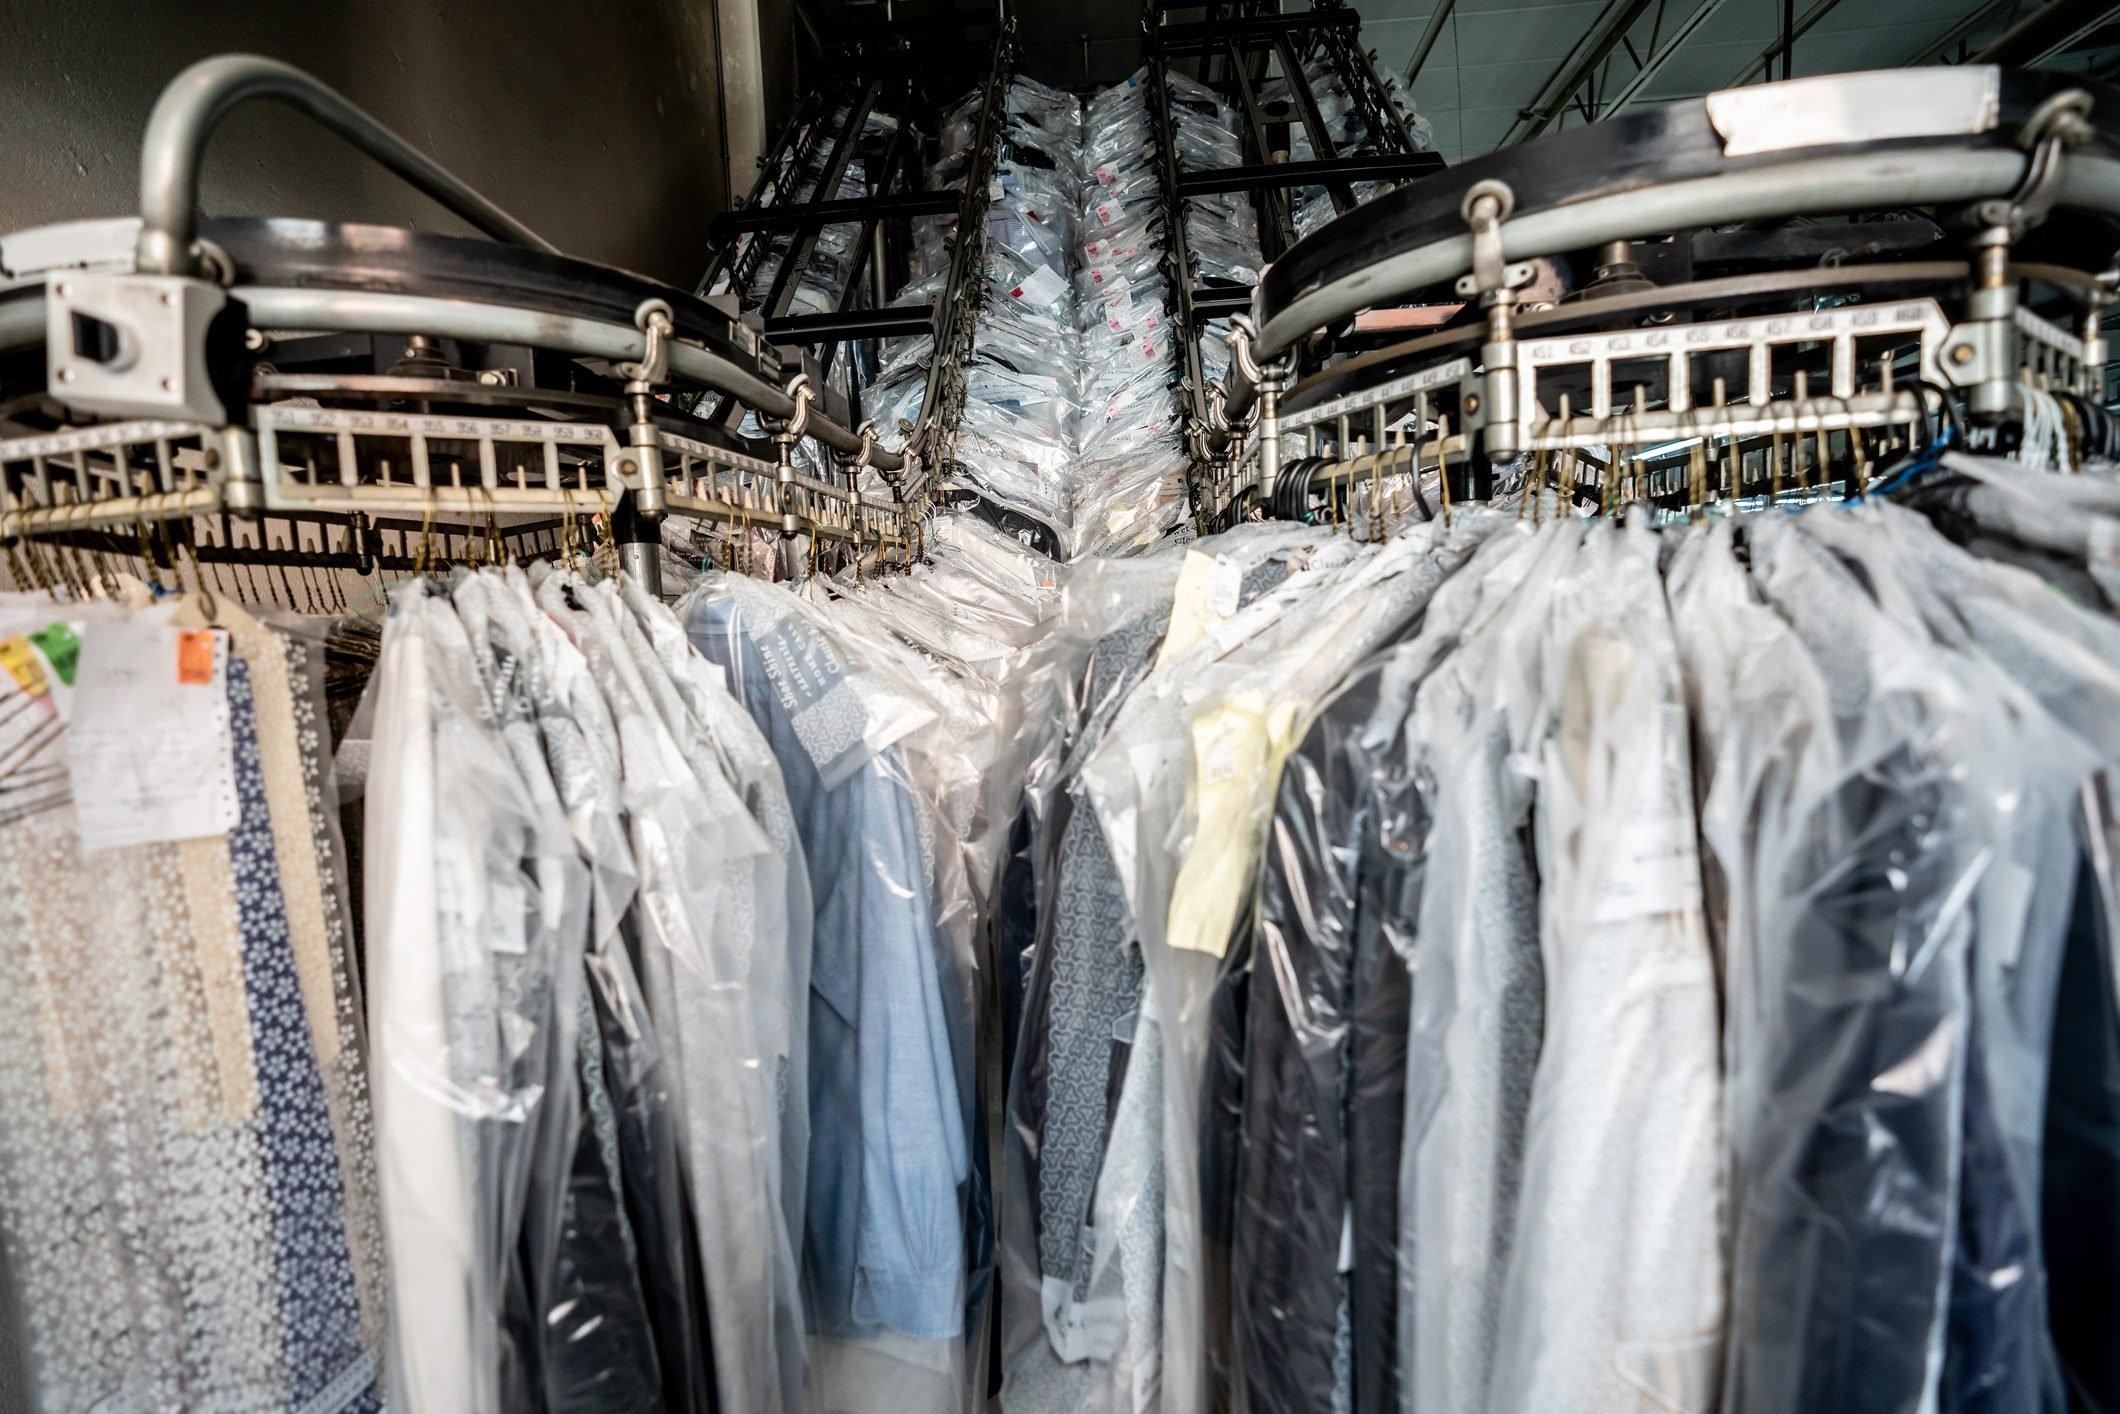 Conveyor belt at an industrial laundry service with clean clothes